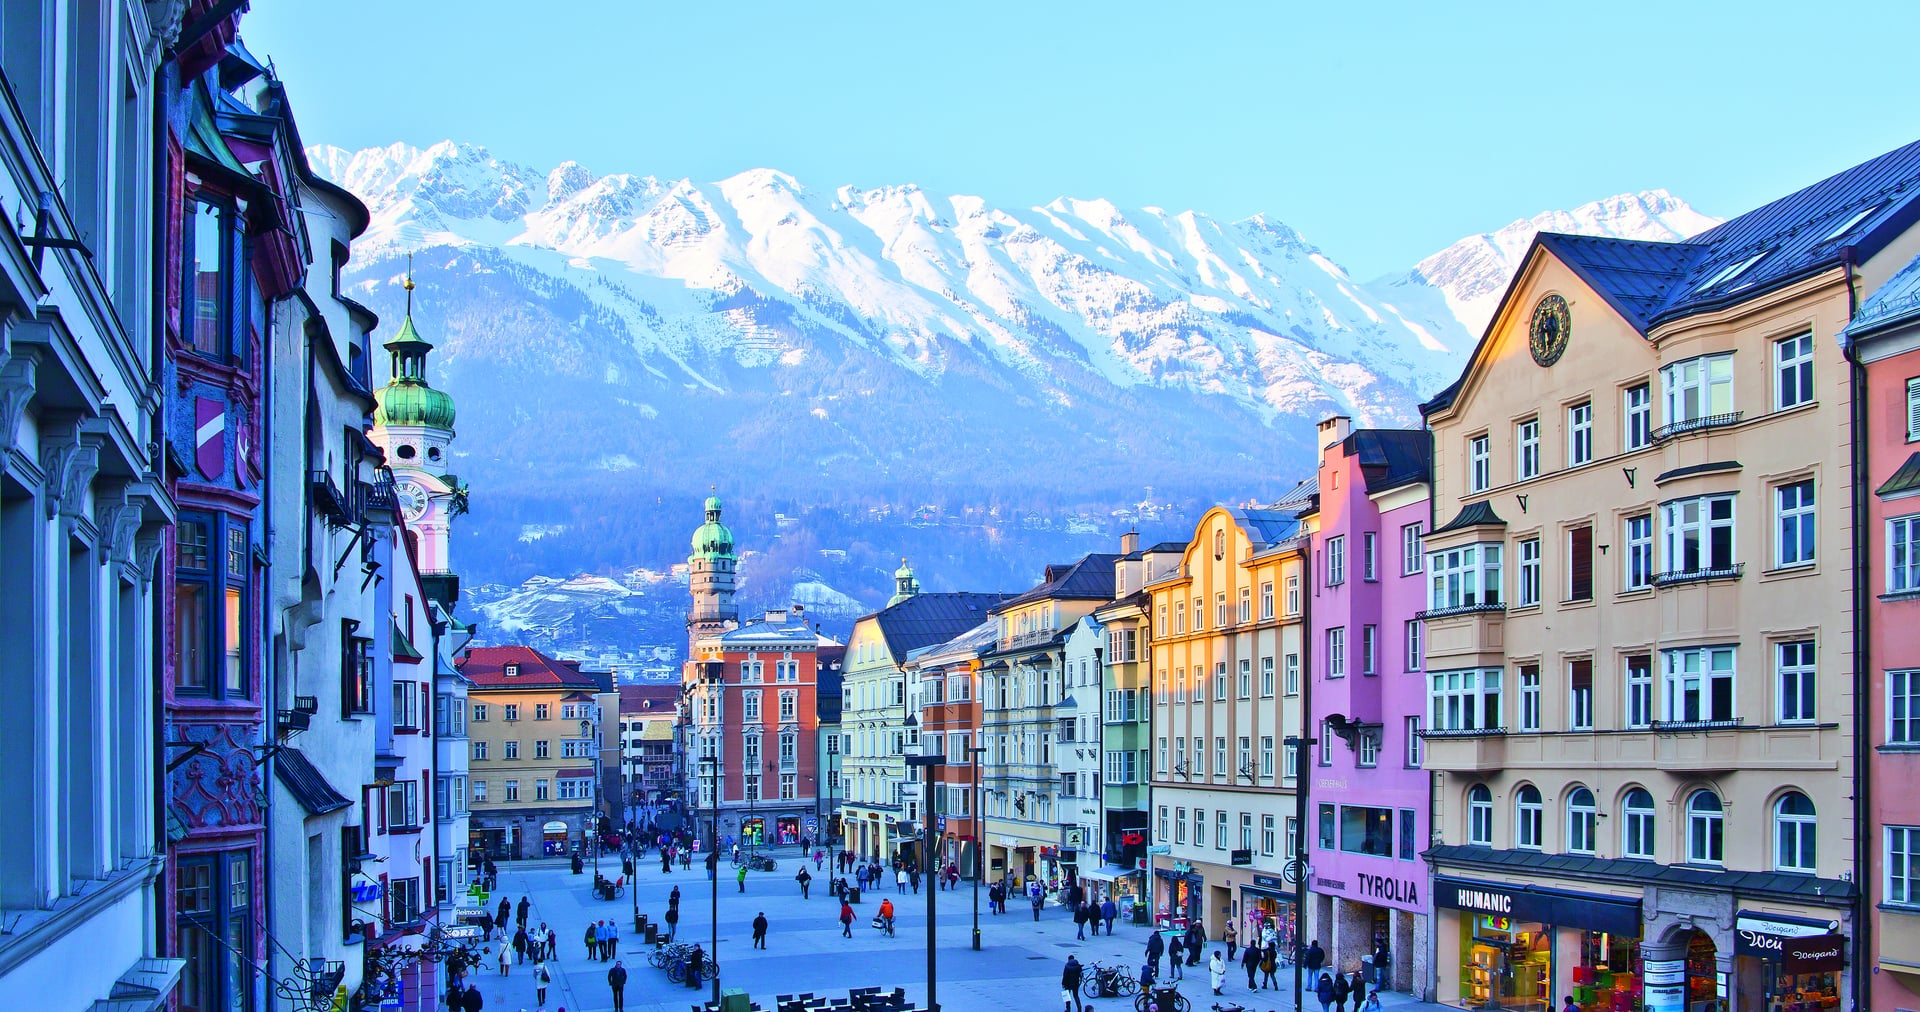 Sightseeing, Shopping, MICE, Luxury – Innsbruck has it all… | Travel News l  Tourism News India | Travel Trade Magazine